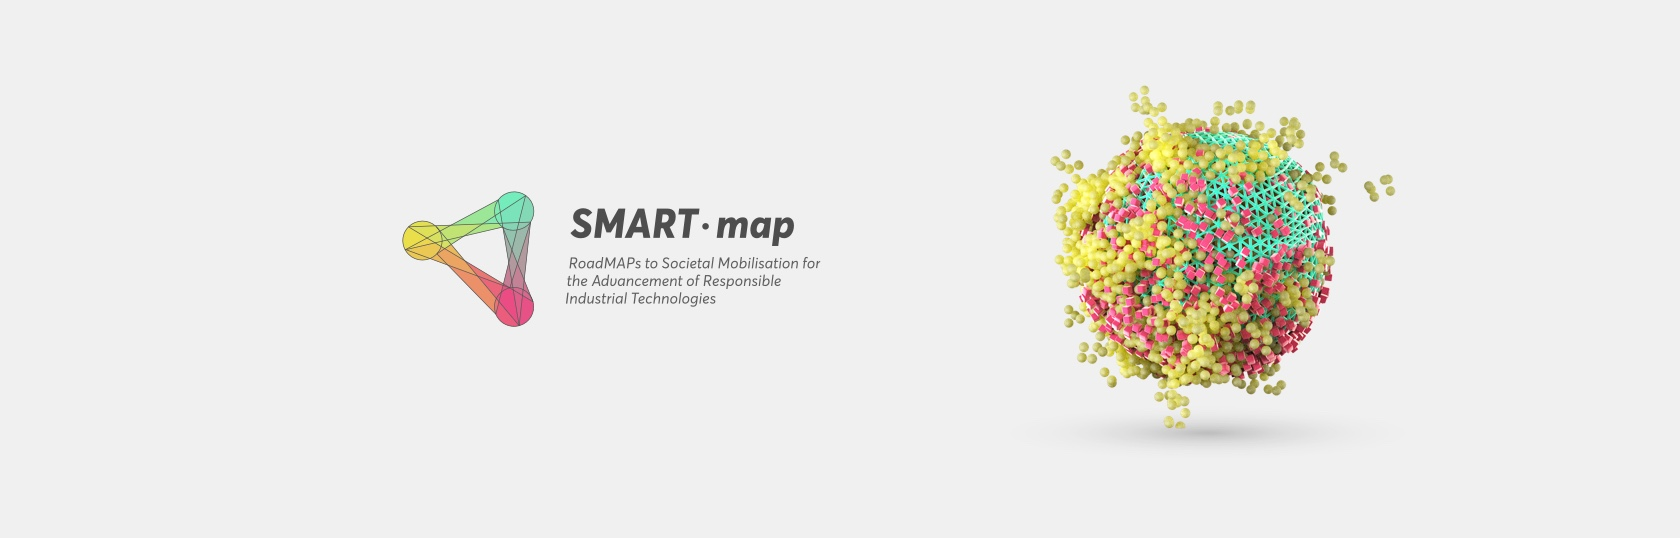 Horizon 2020 SMART-map Visual Identity - Logo + illustration 2 - Fabio Besti Interdisciplinary Design